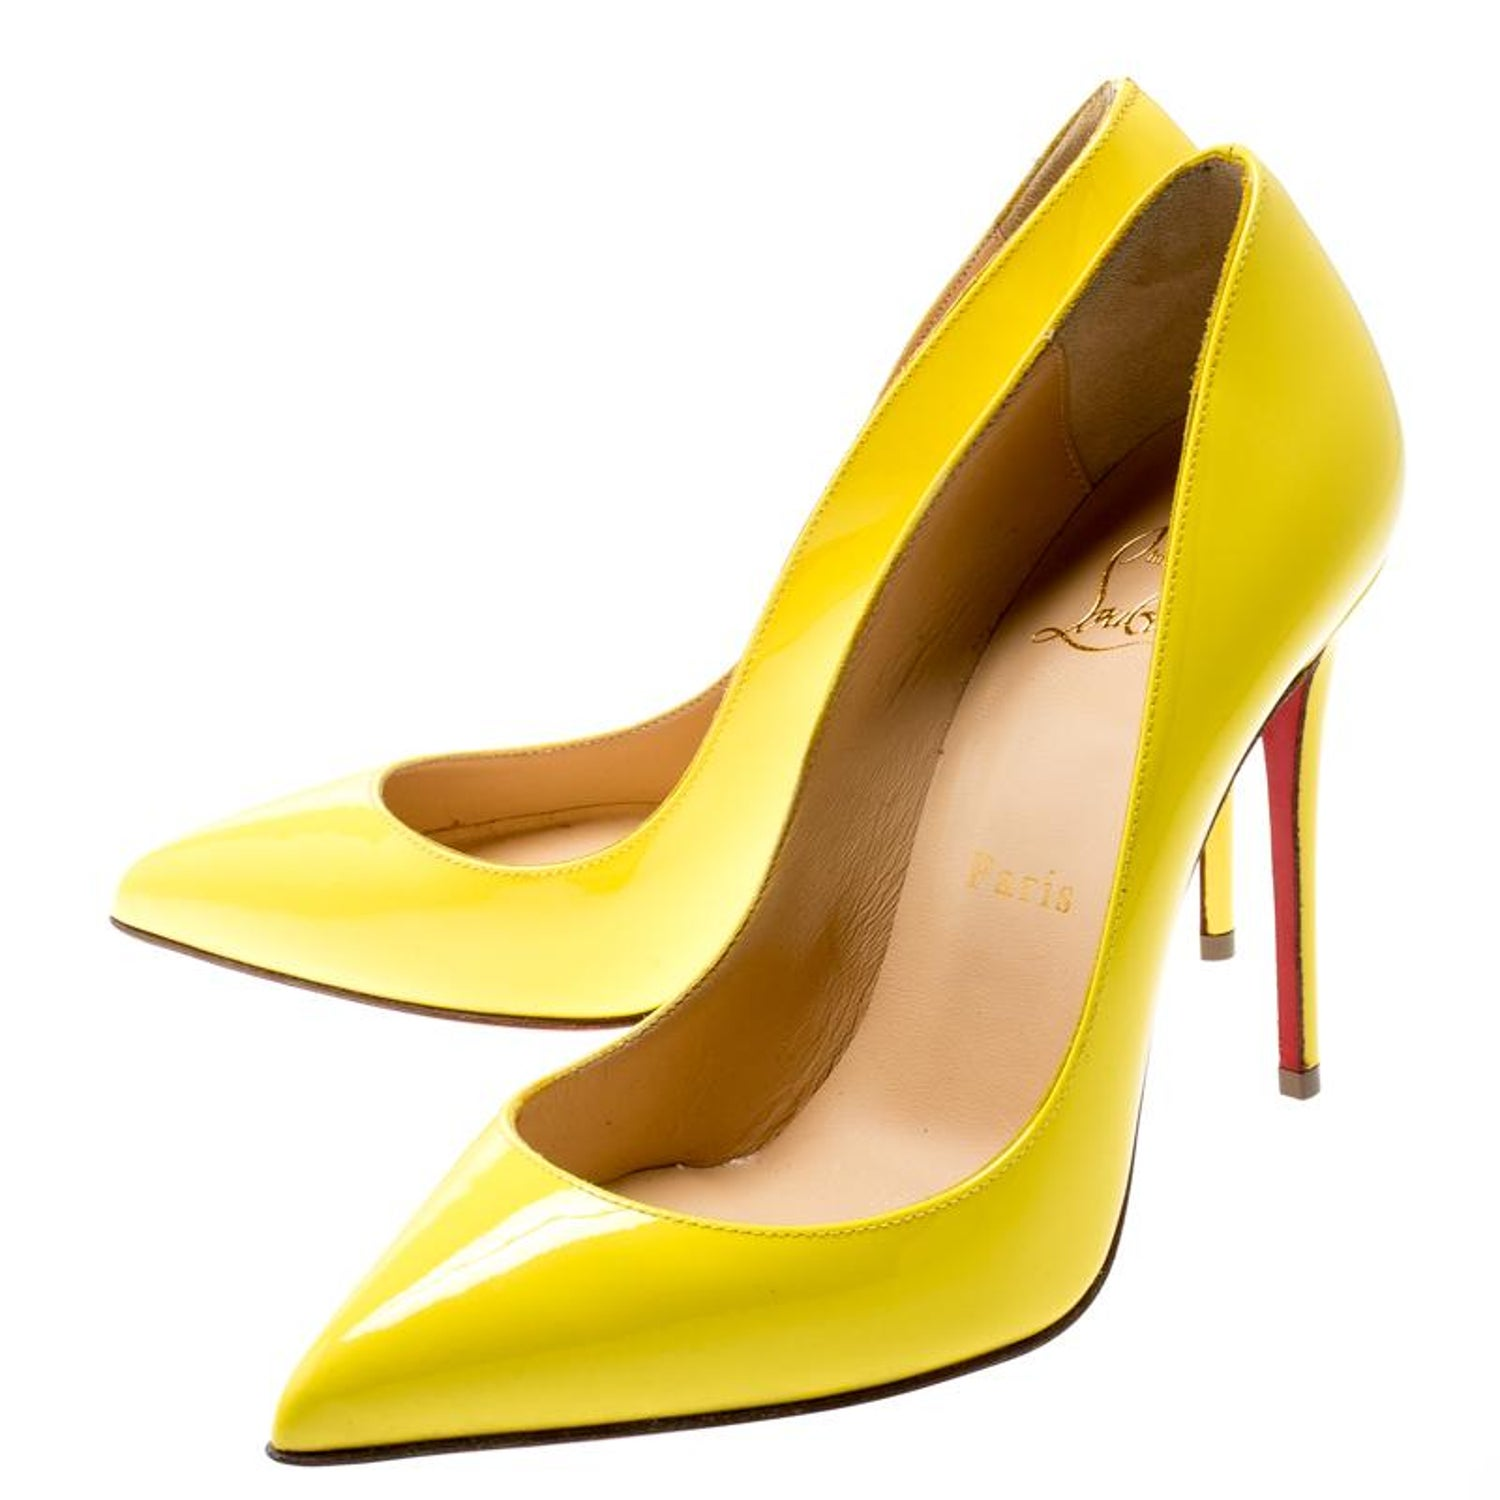 best sneakers b5979 2934b Christian Louboutin Yellow Patent Leather So Kate Pointed Toe Pumps Size 36